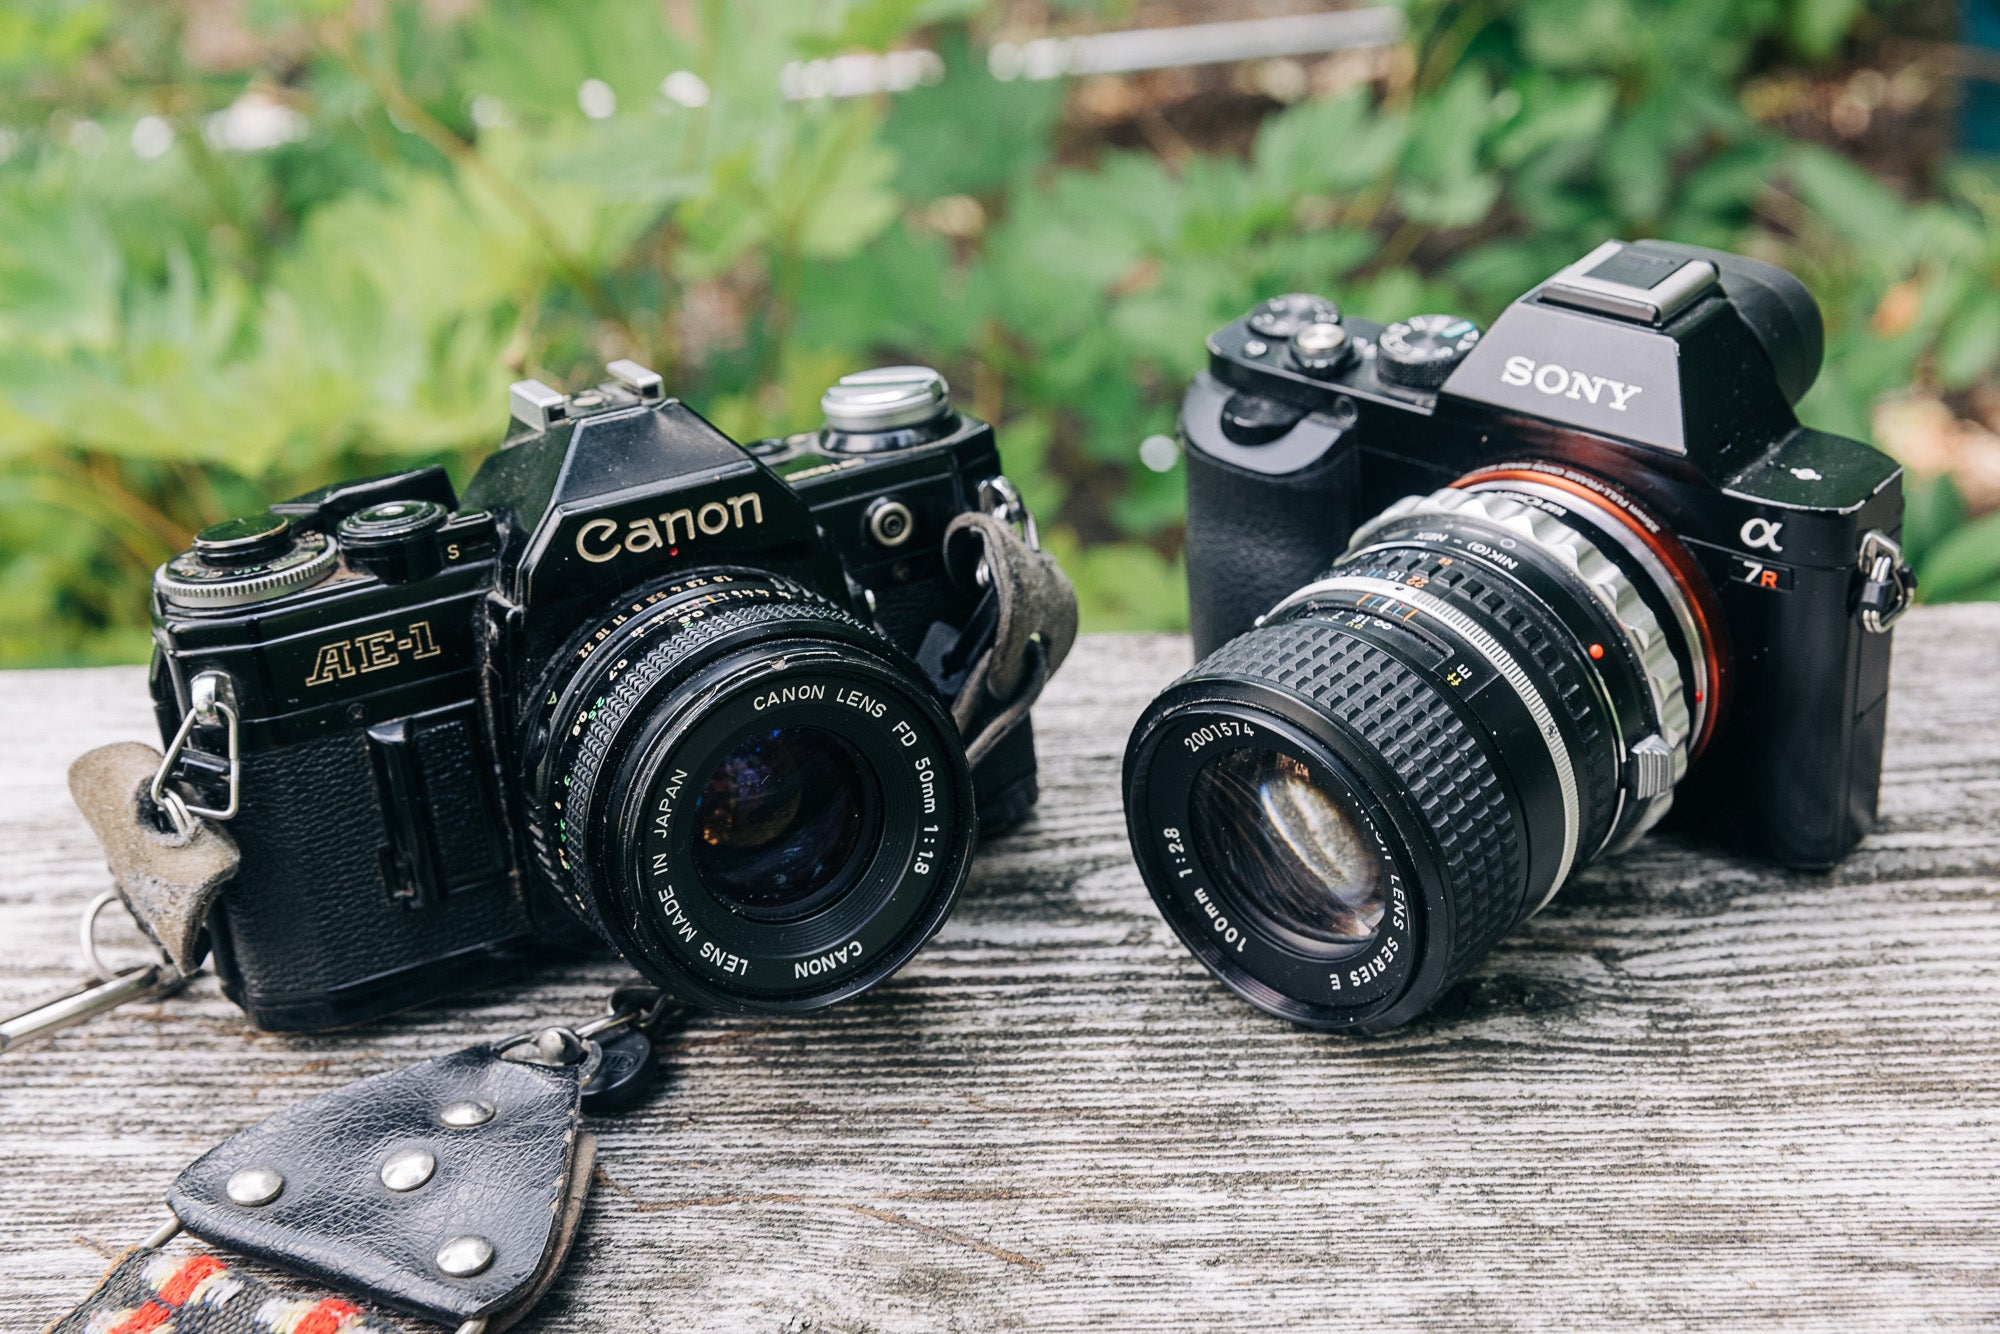 A sony a7r with an vintage lenses and canon AE-1 cameras